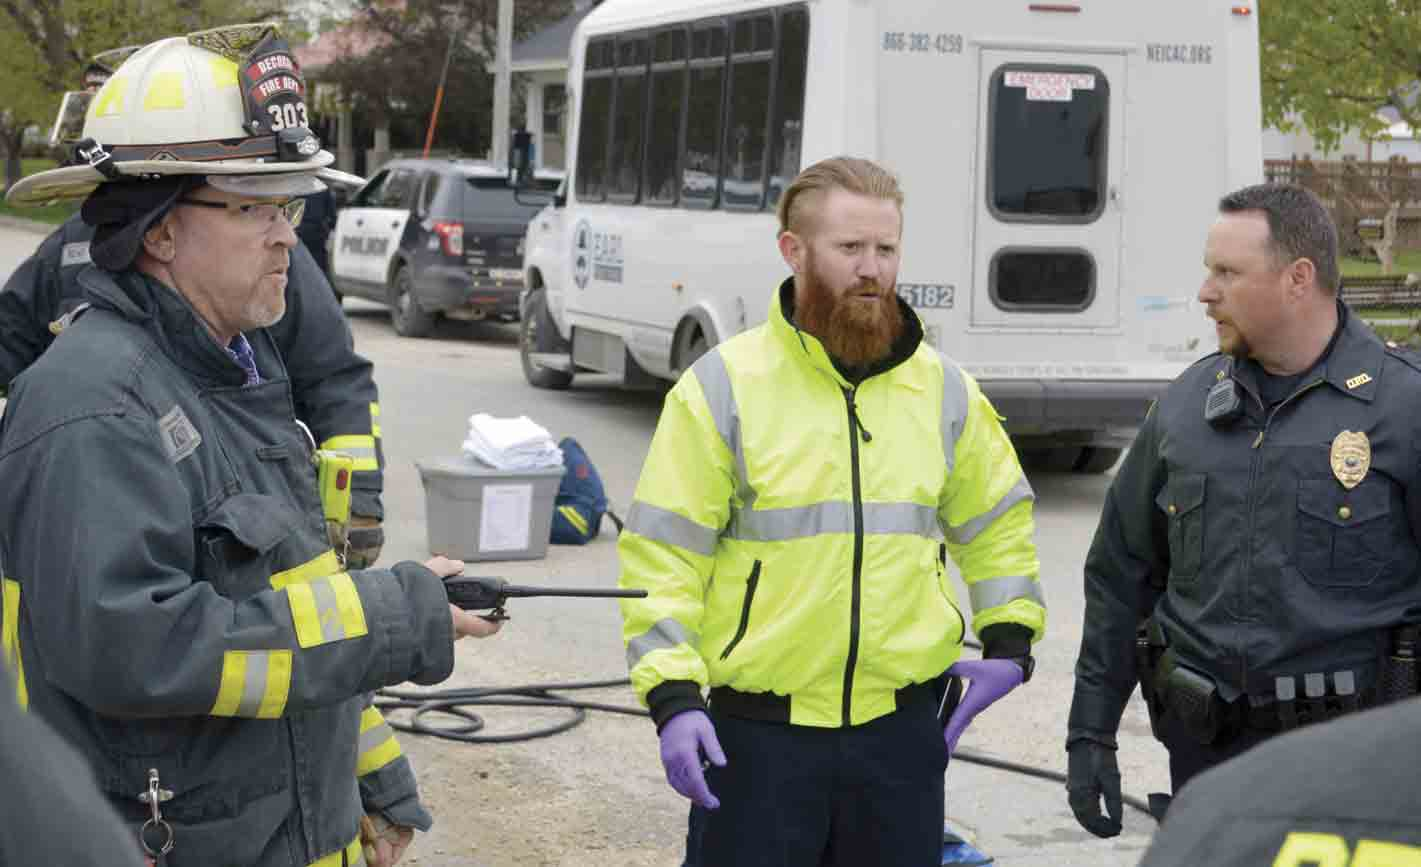 As part of a drill conducted by the Winneshiek Emergency Preparedness Coalition (WEPC), various agencies and emergency response crews, including (l-r) Lee Bjerke from the Decorah Fire Department, Ben Shockey from the Winneshiek Medical Center ambulance crew, and Brent Parker from the...